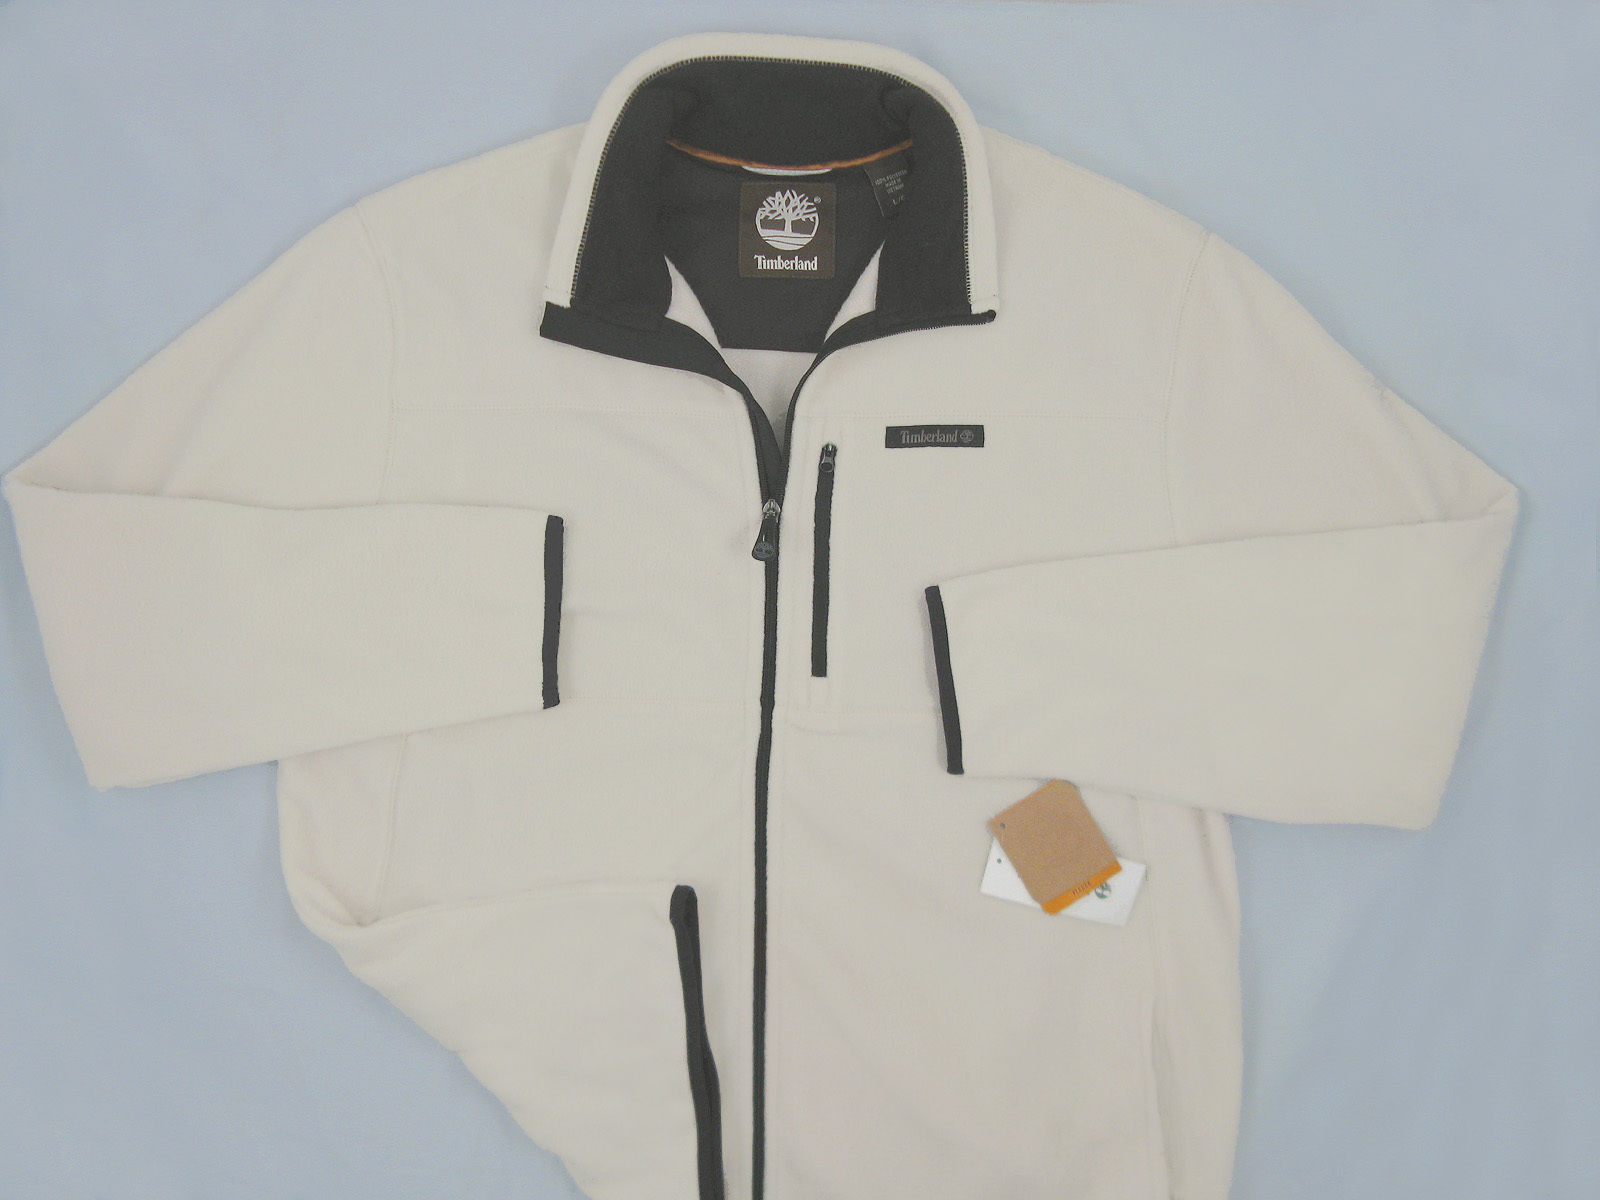 NEW! Timberland Mens Fleece Jacket (Coat)!  Large  Oatmeal  *Cut Large & Roomy* - $69.99